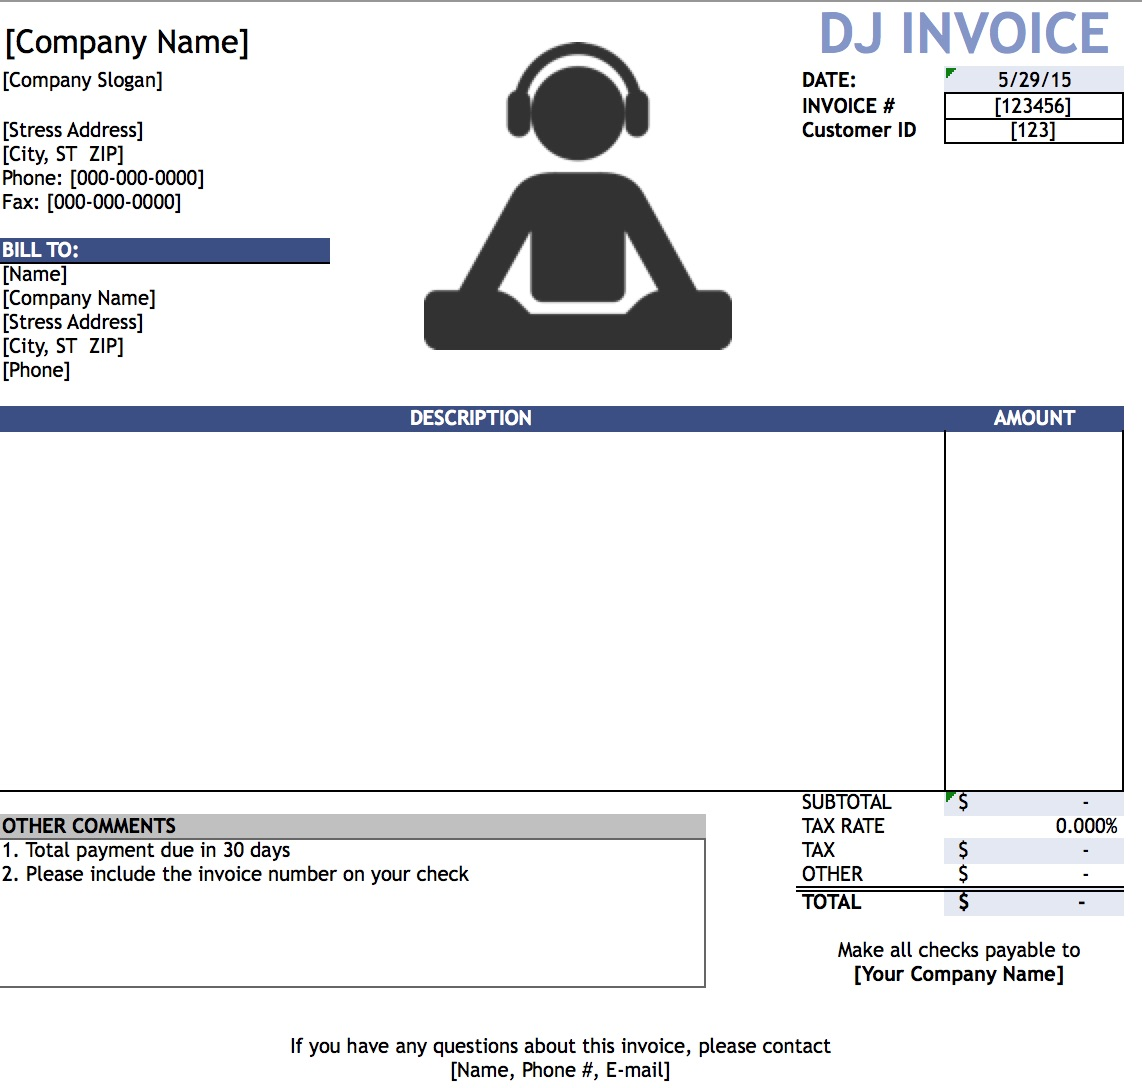 Free DJ Disc Jockey Invoice Template Excel PDF Word Doc - Free blank invoice template for service business